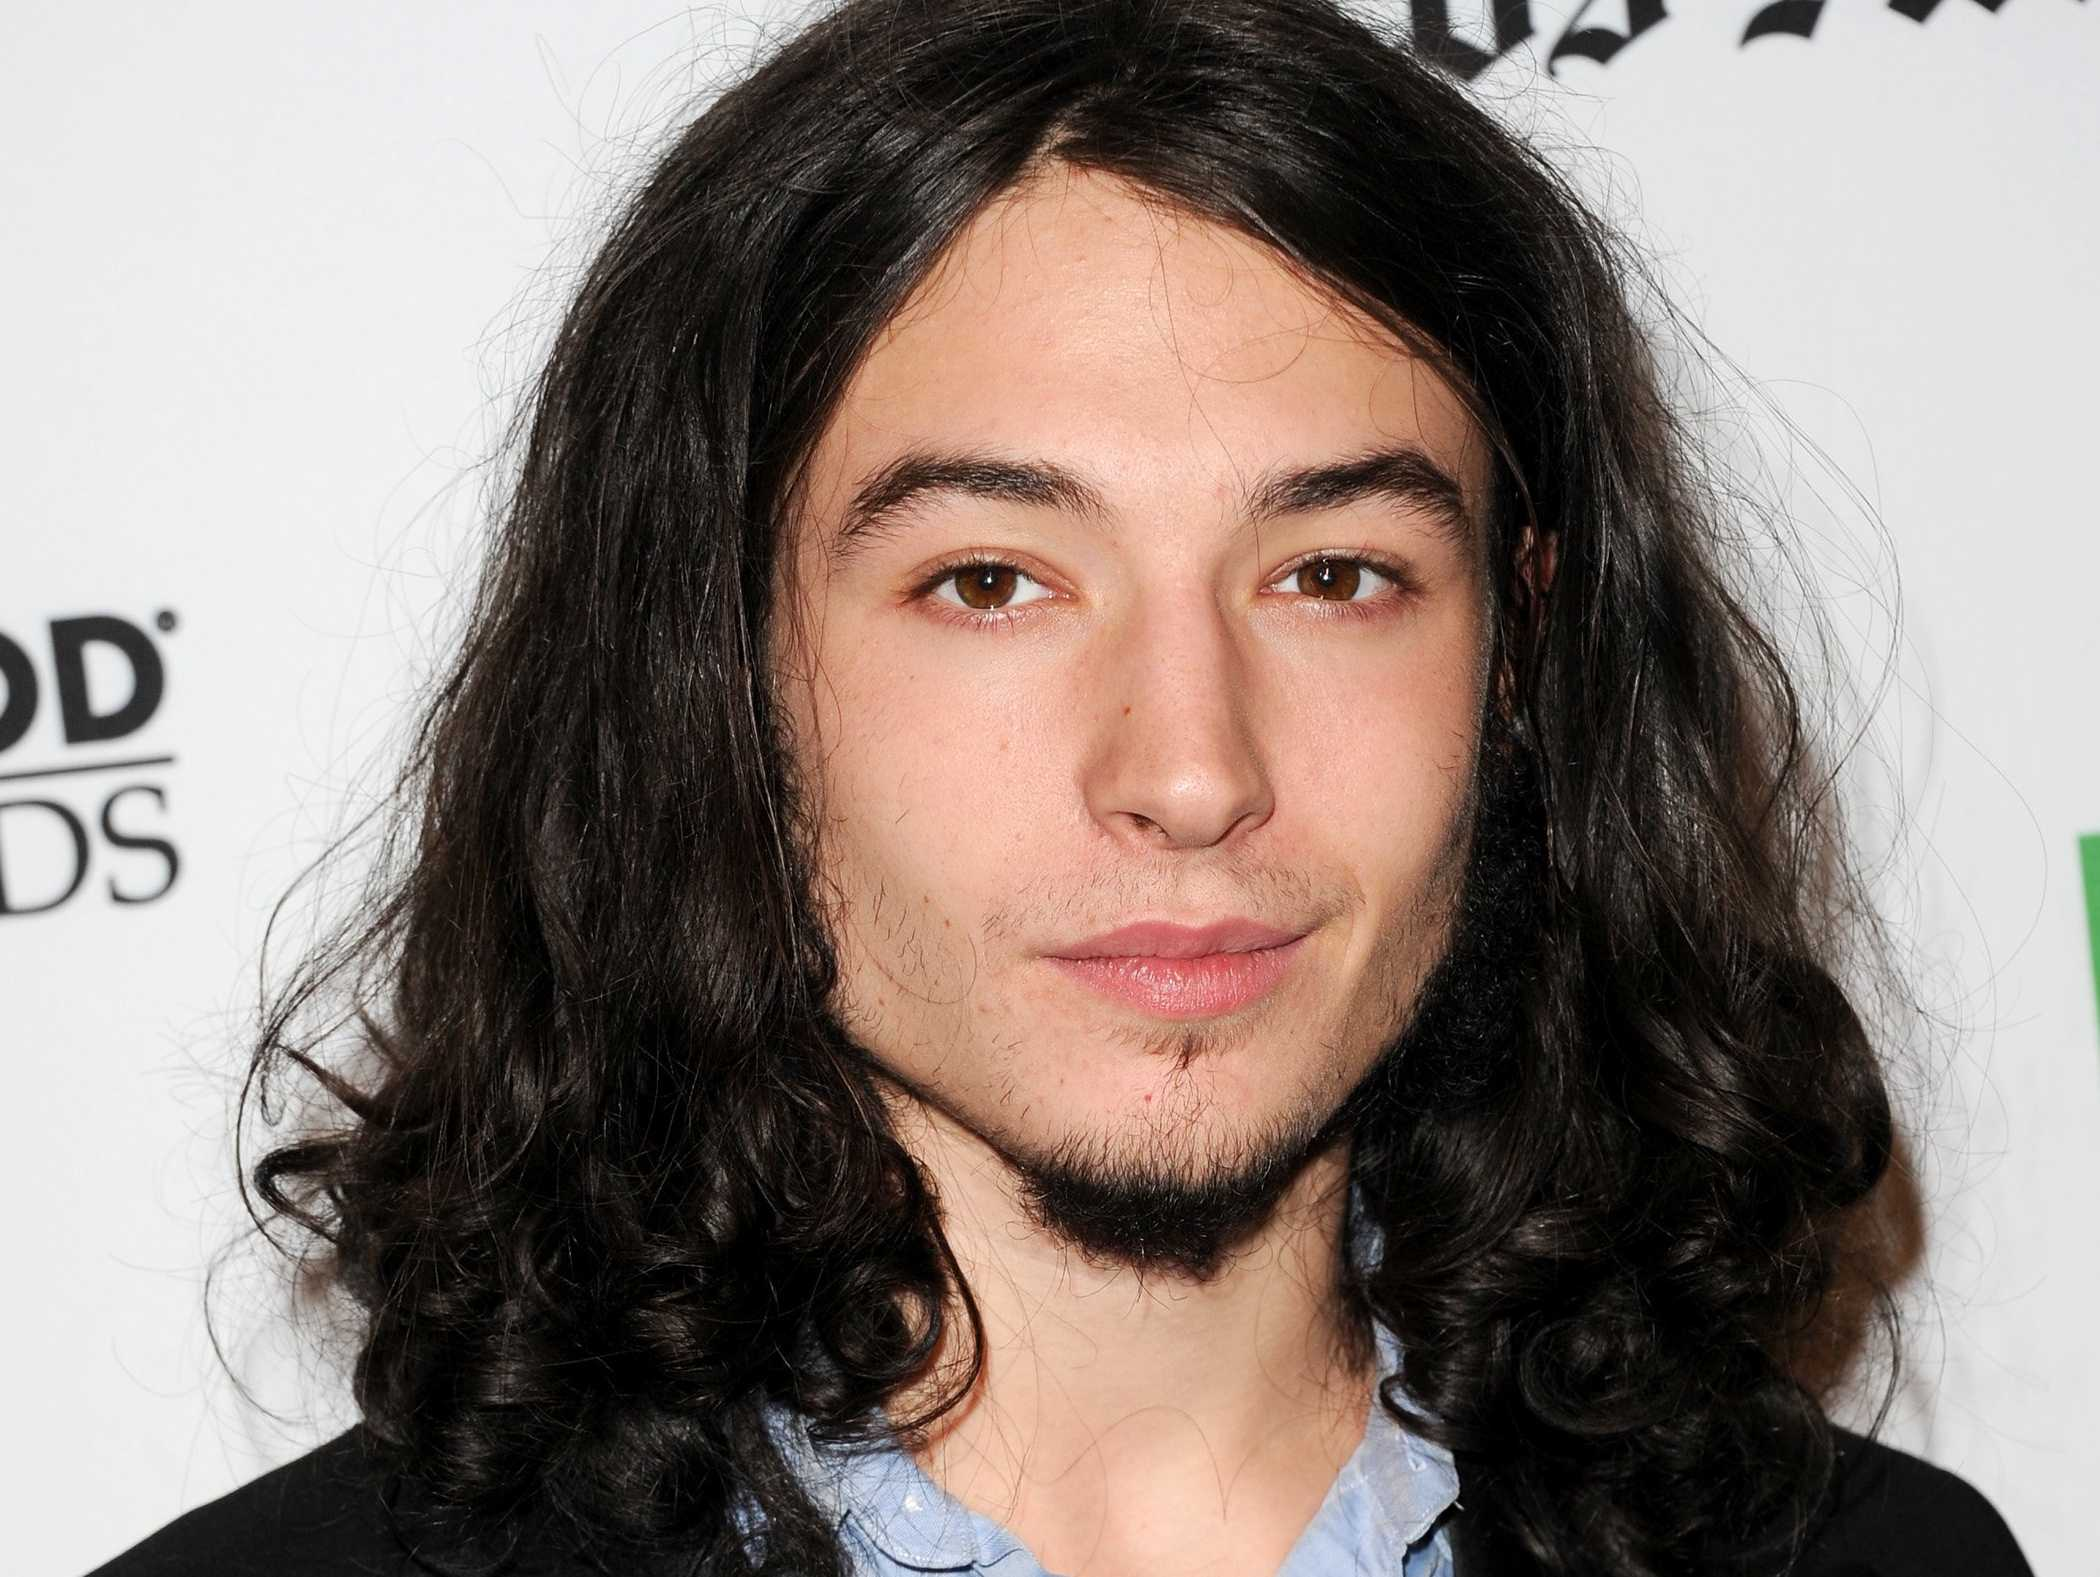 ezra miller 4k widescreen desktop wallpaper 1544